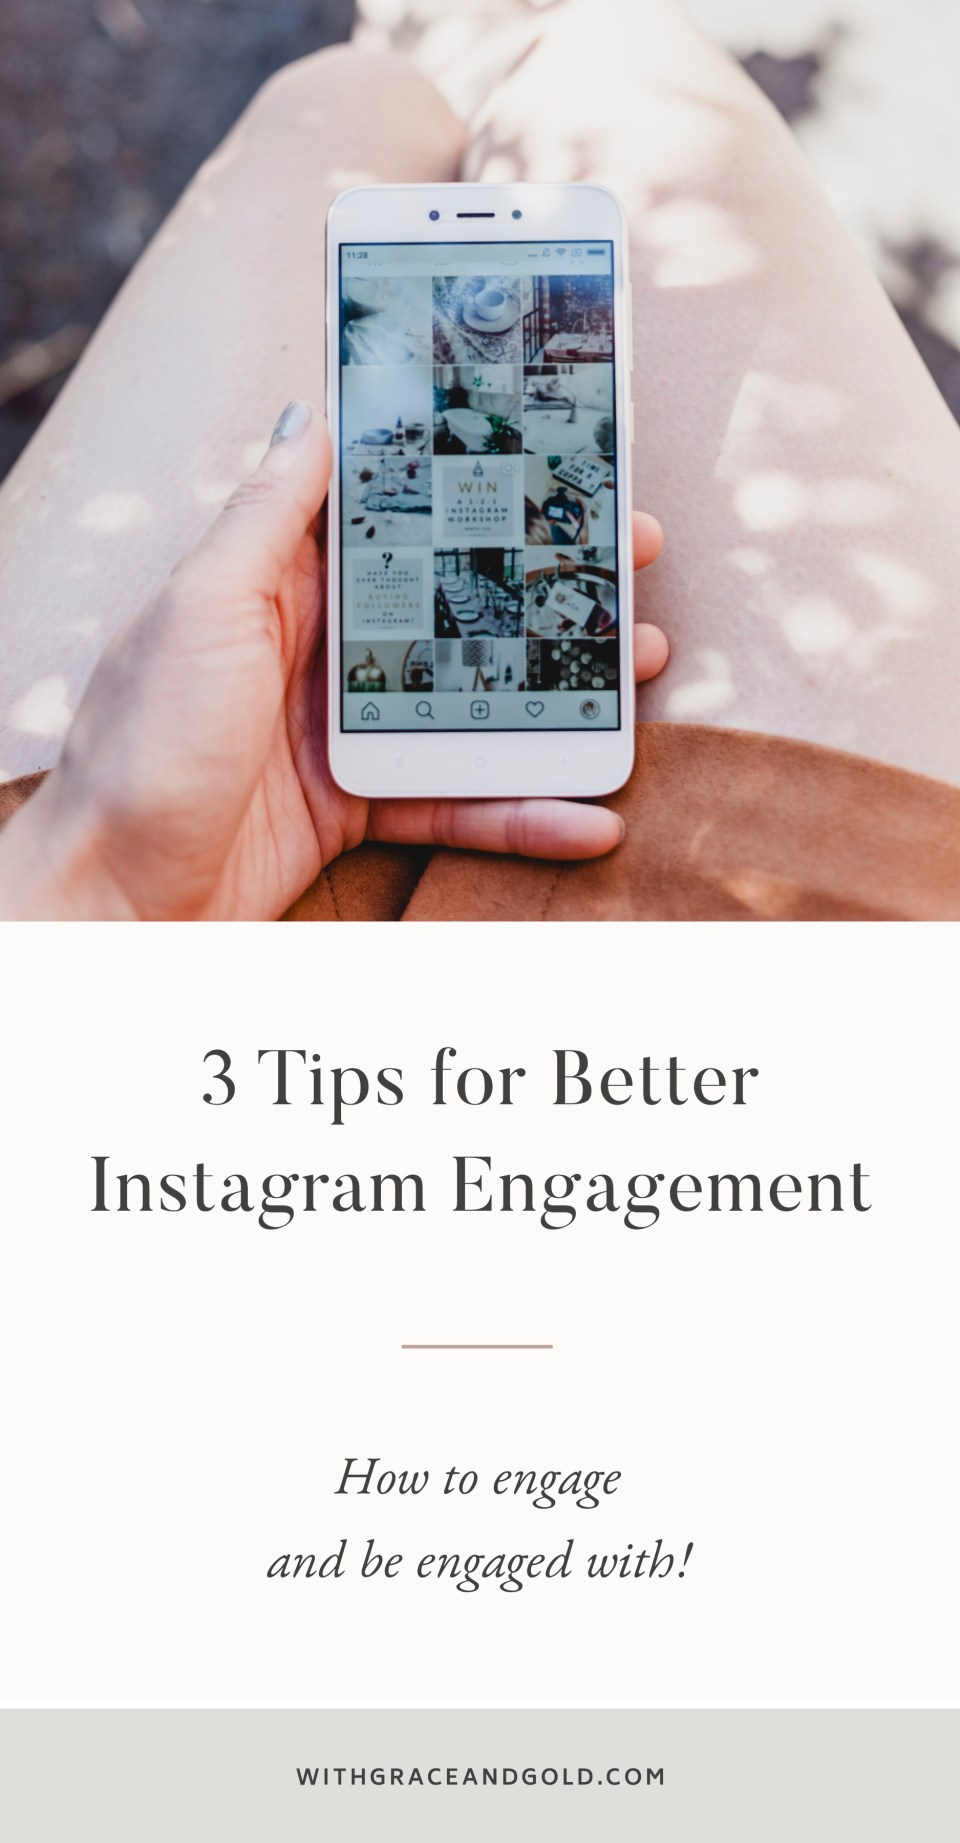 3 Tips for Better Instagram Engagement by With Grace and Gold